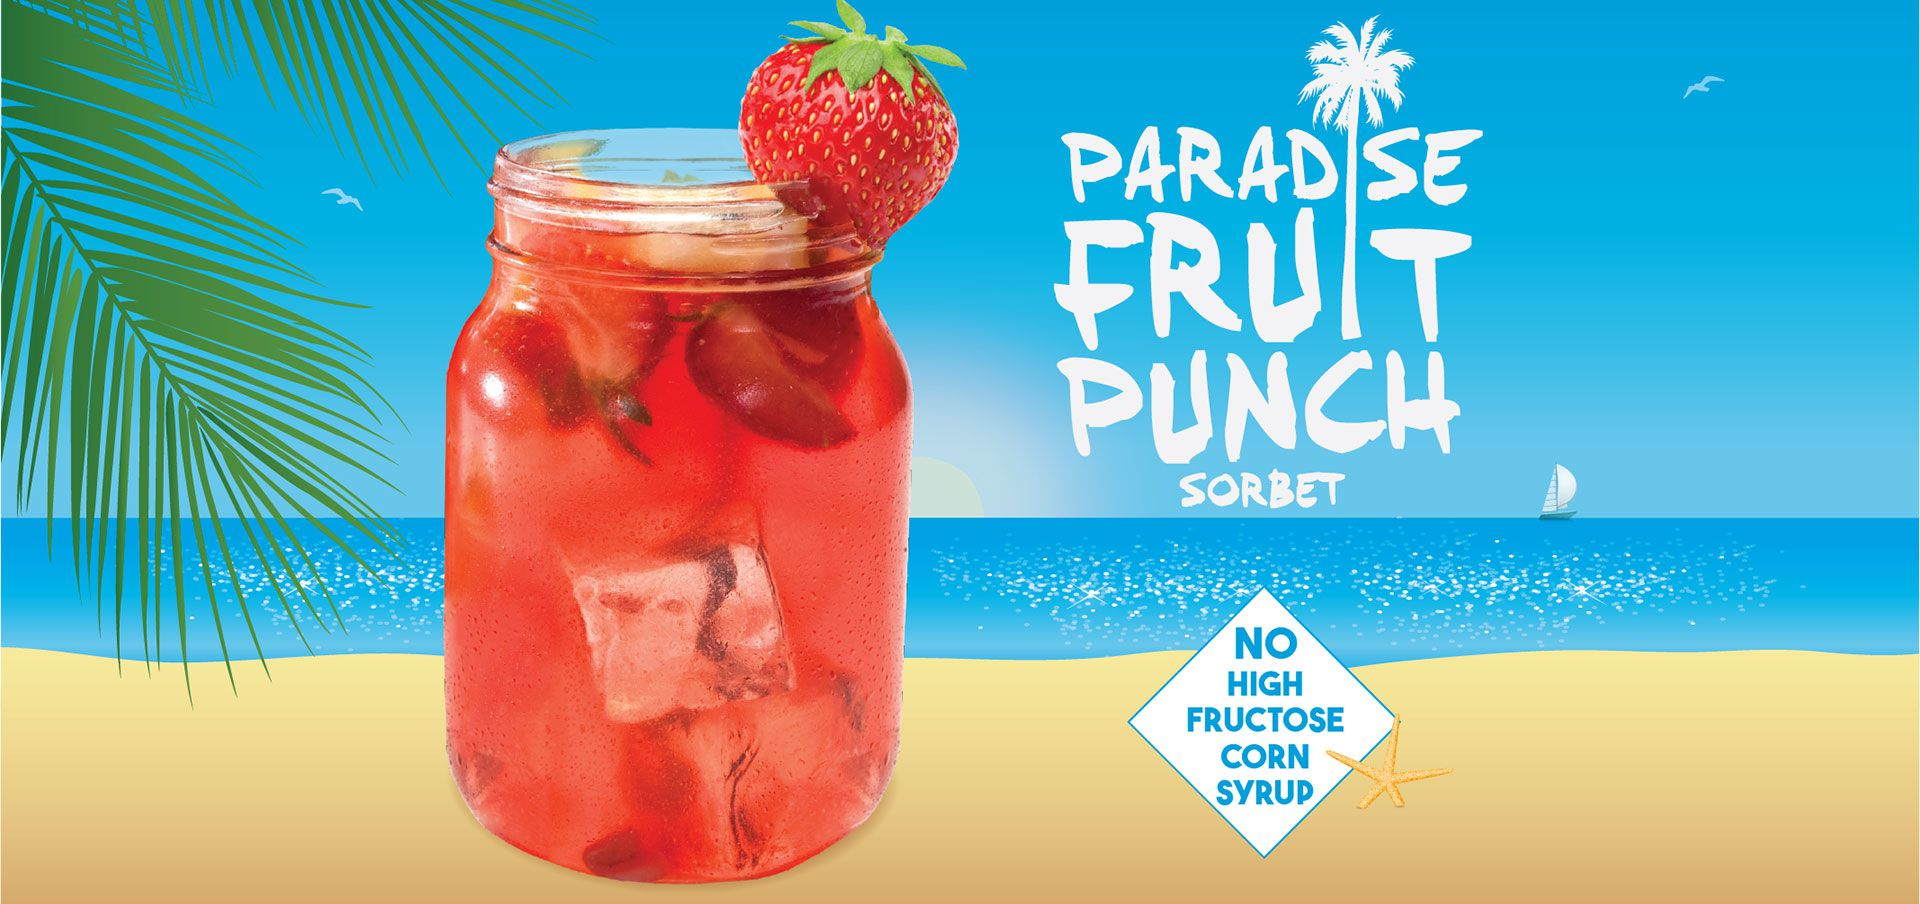 vegan paradise fruit punch sorbet label image